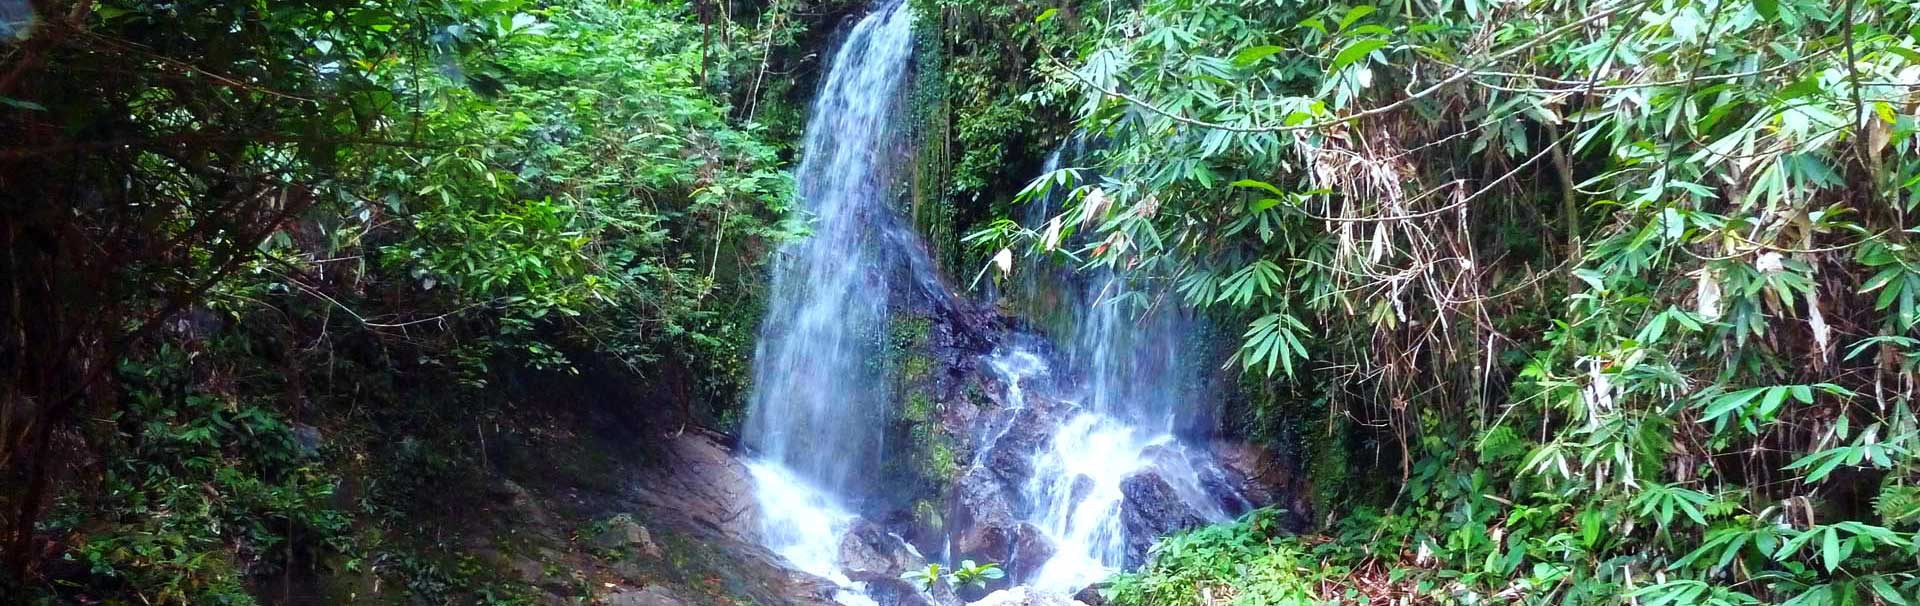 Waterfall in the Khao Lak jungle